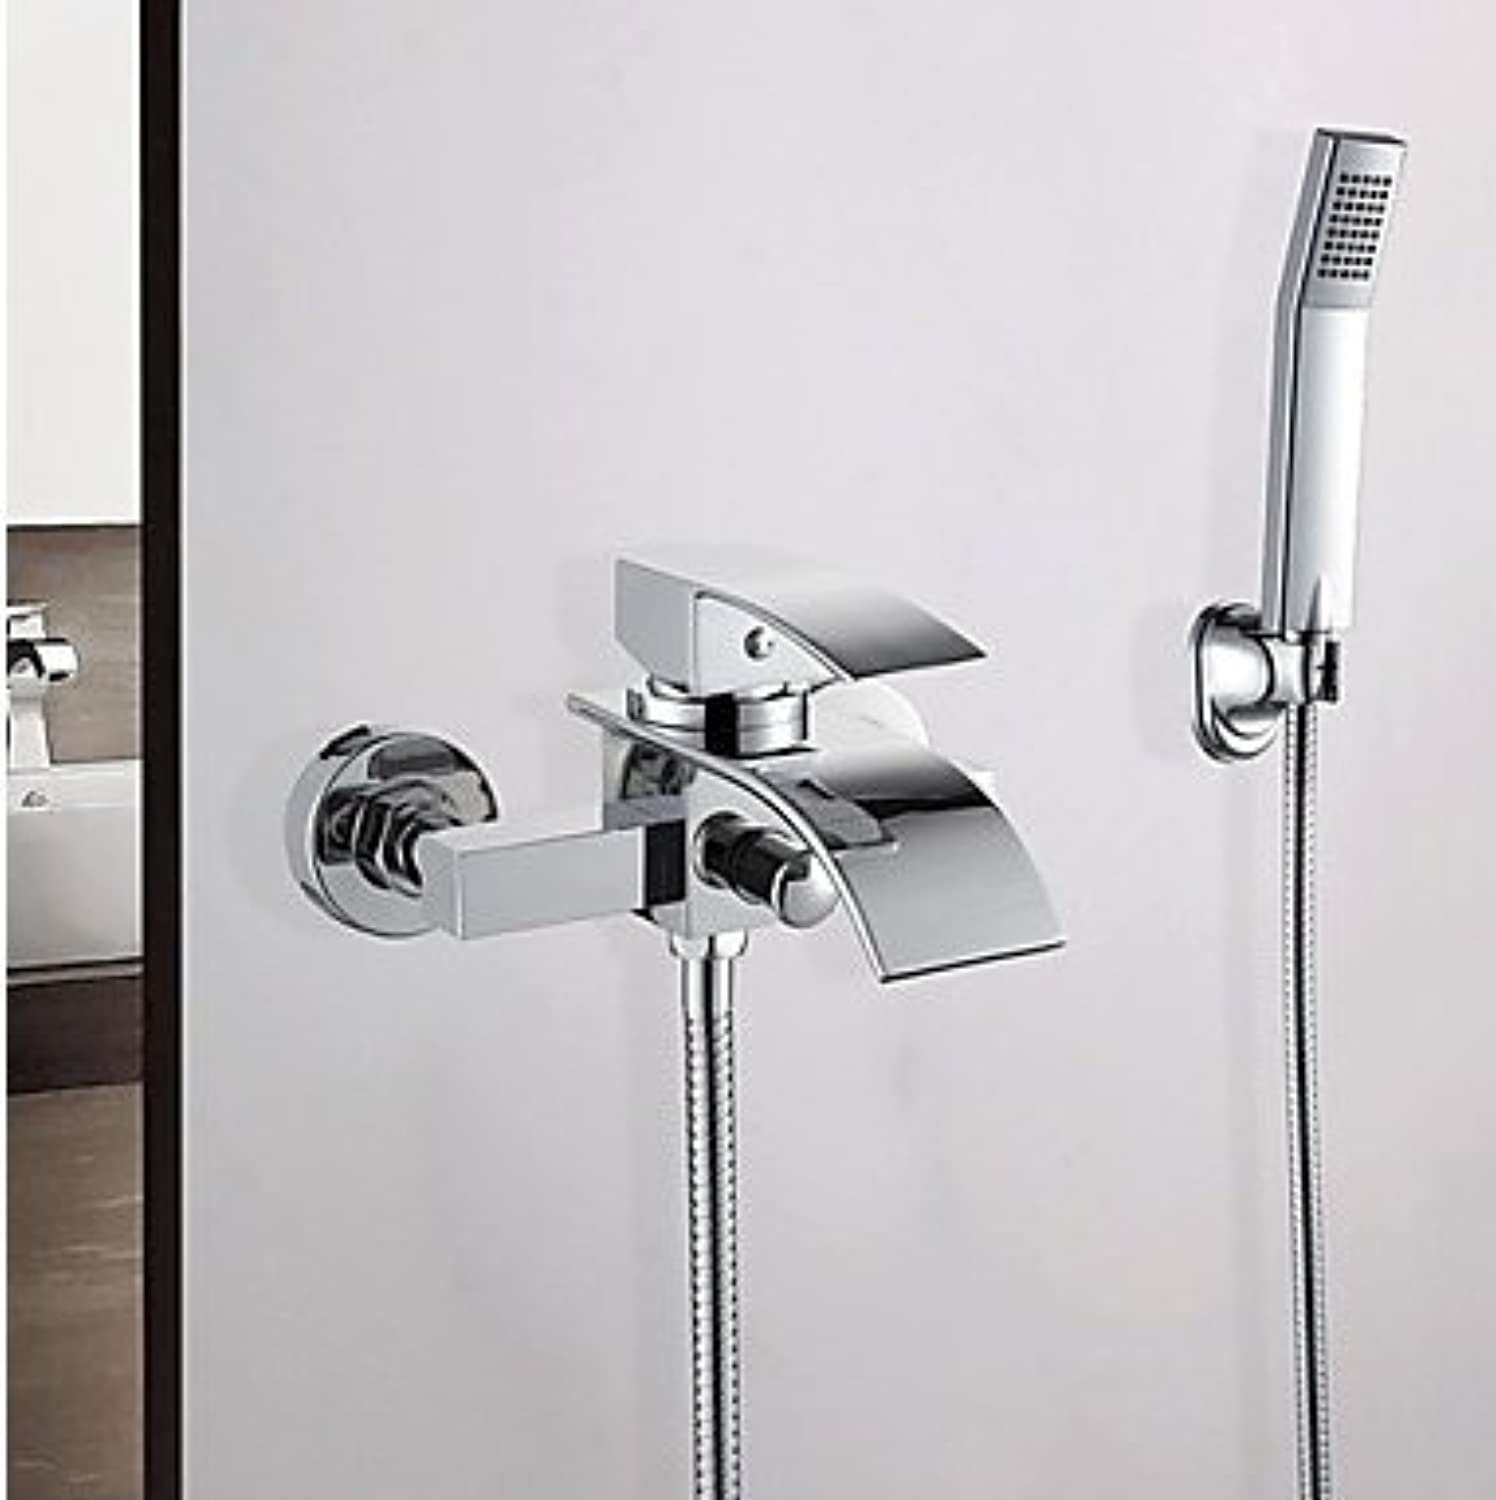 Contemporary Wall Mounted Waterfall Handshower Included Ceramic Valve Two Holes Single Handle Two Holes Chrome , Bathtub Faucet